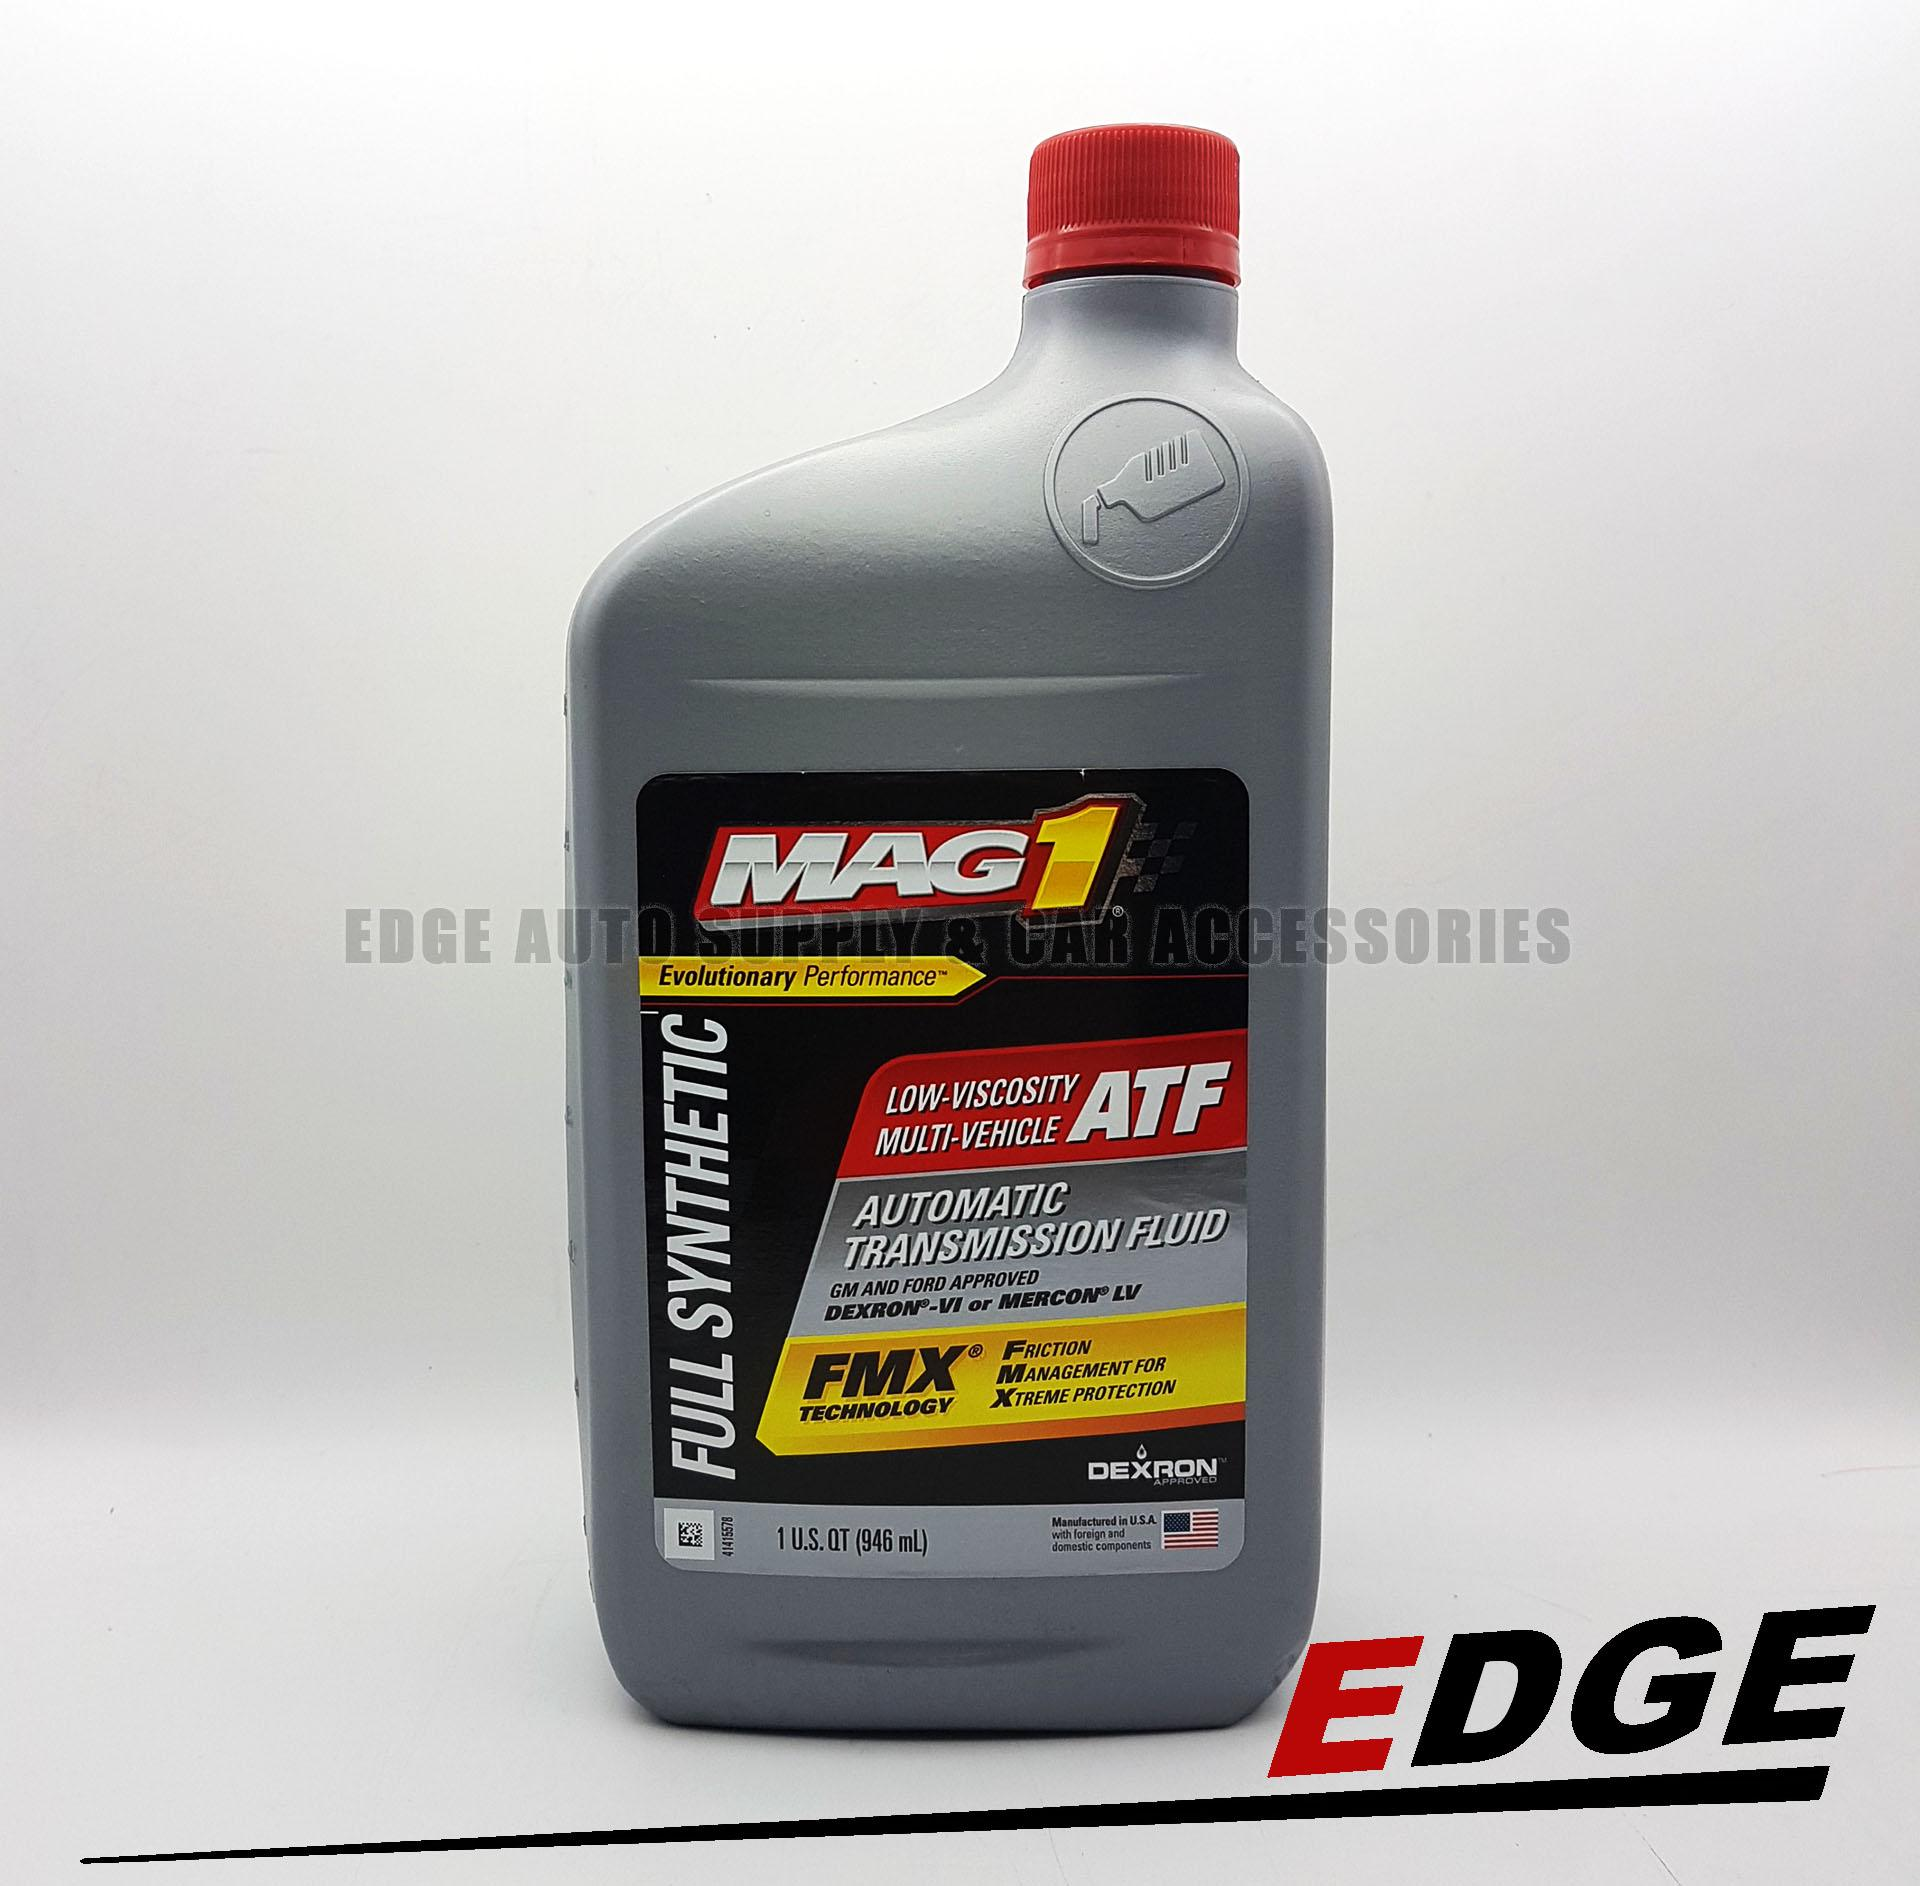 Mag 1 Synthetic Automatic Transmission Fluid Low Viscosity Dexron-VI  Multi-Vehicle ATF 1qt (946ml)